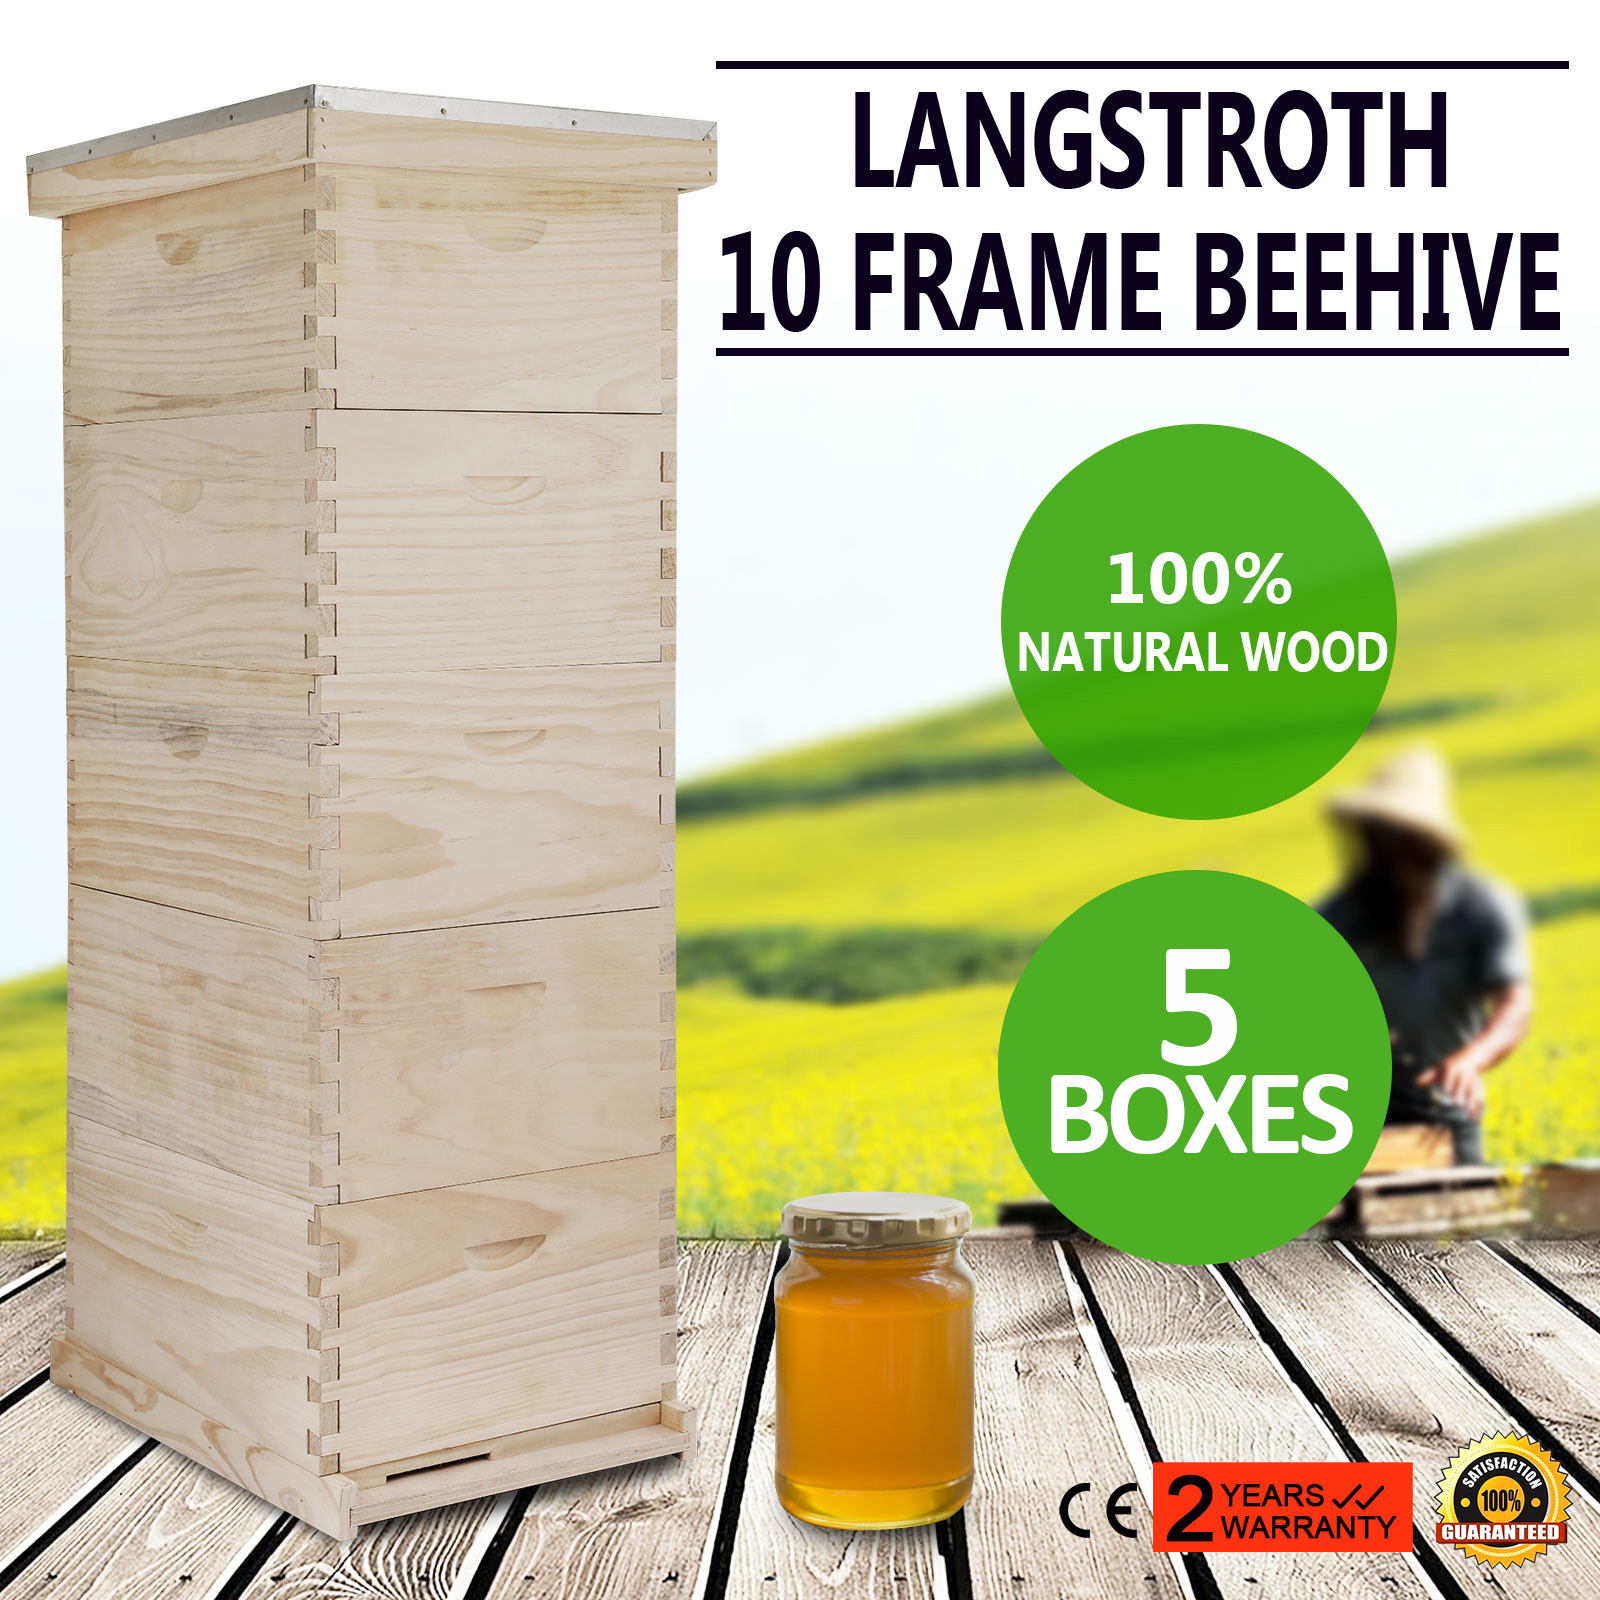 5 Brood Box10-Frame Beehive Frames //Bee Hive Frame for Beekeeping w// Metal Roof